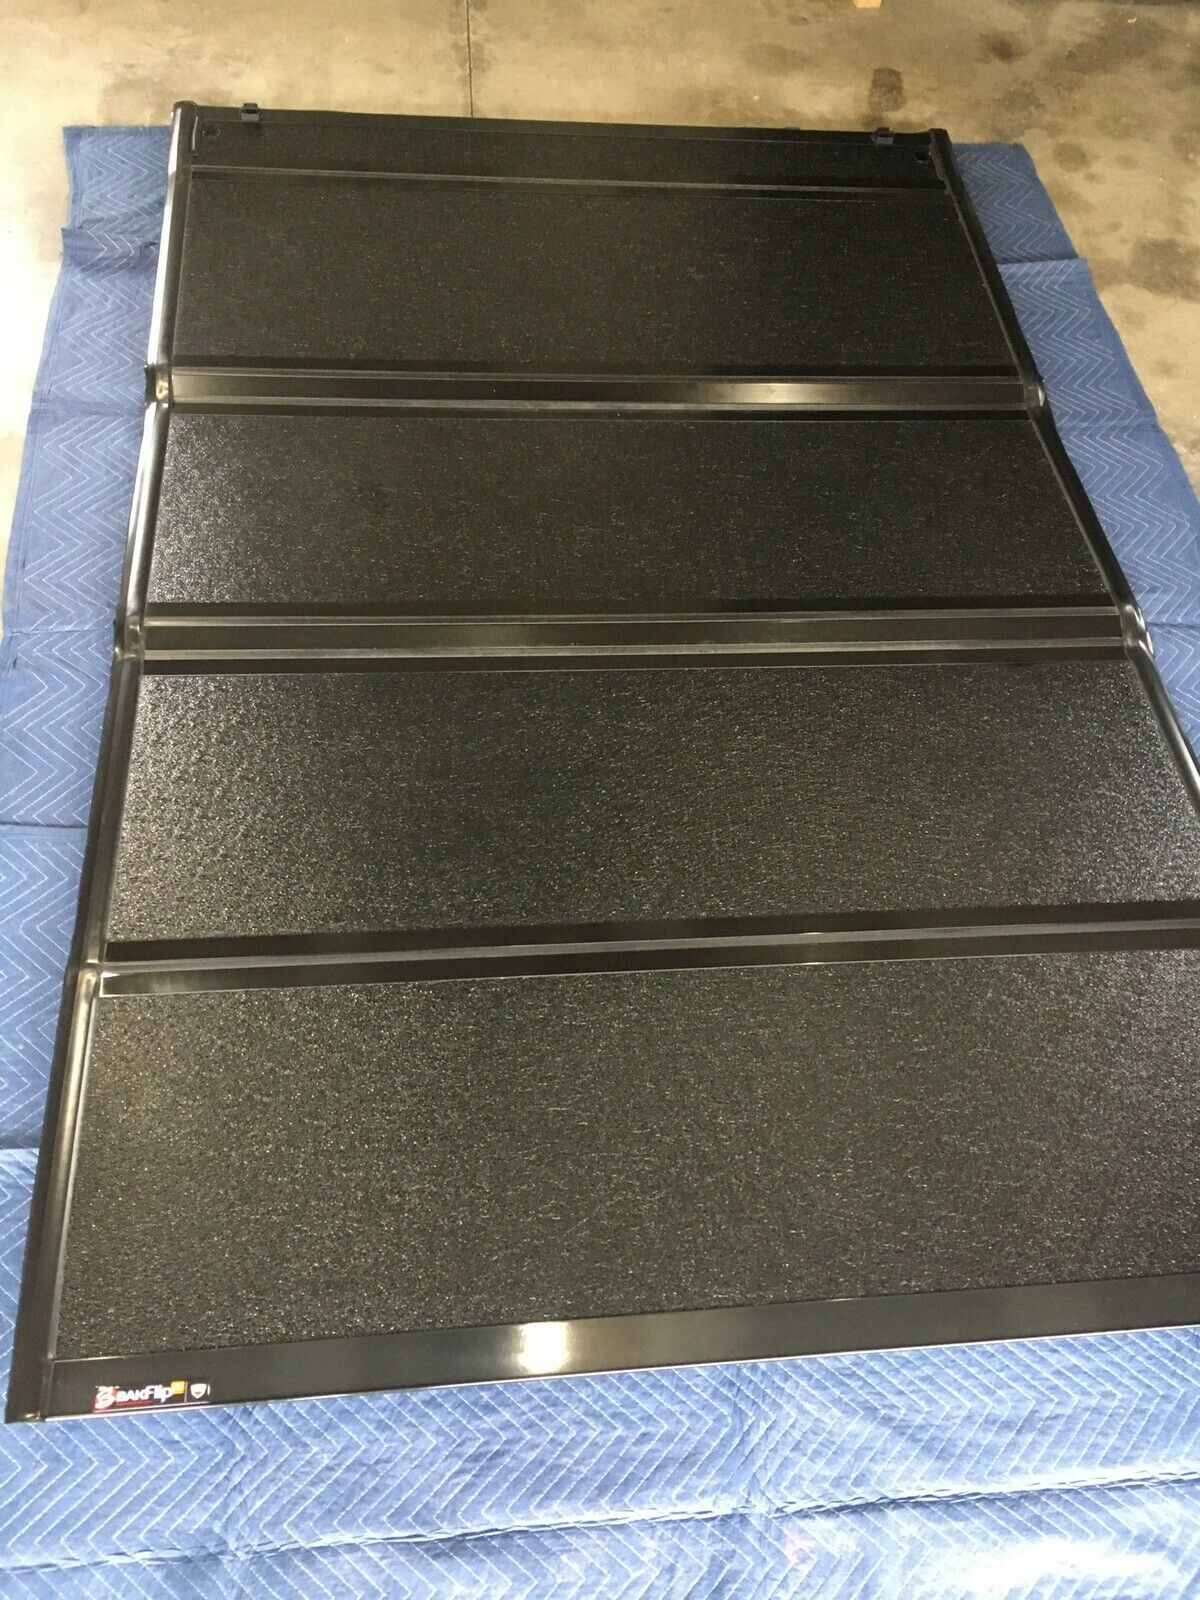 Bakflip F1 in 2020 Tonneau cover, Ford f250, 2019 ford